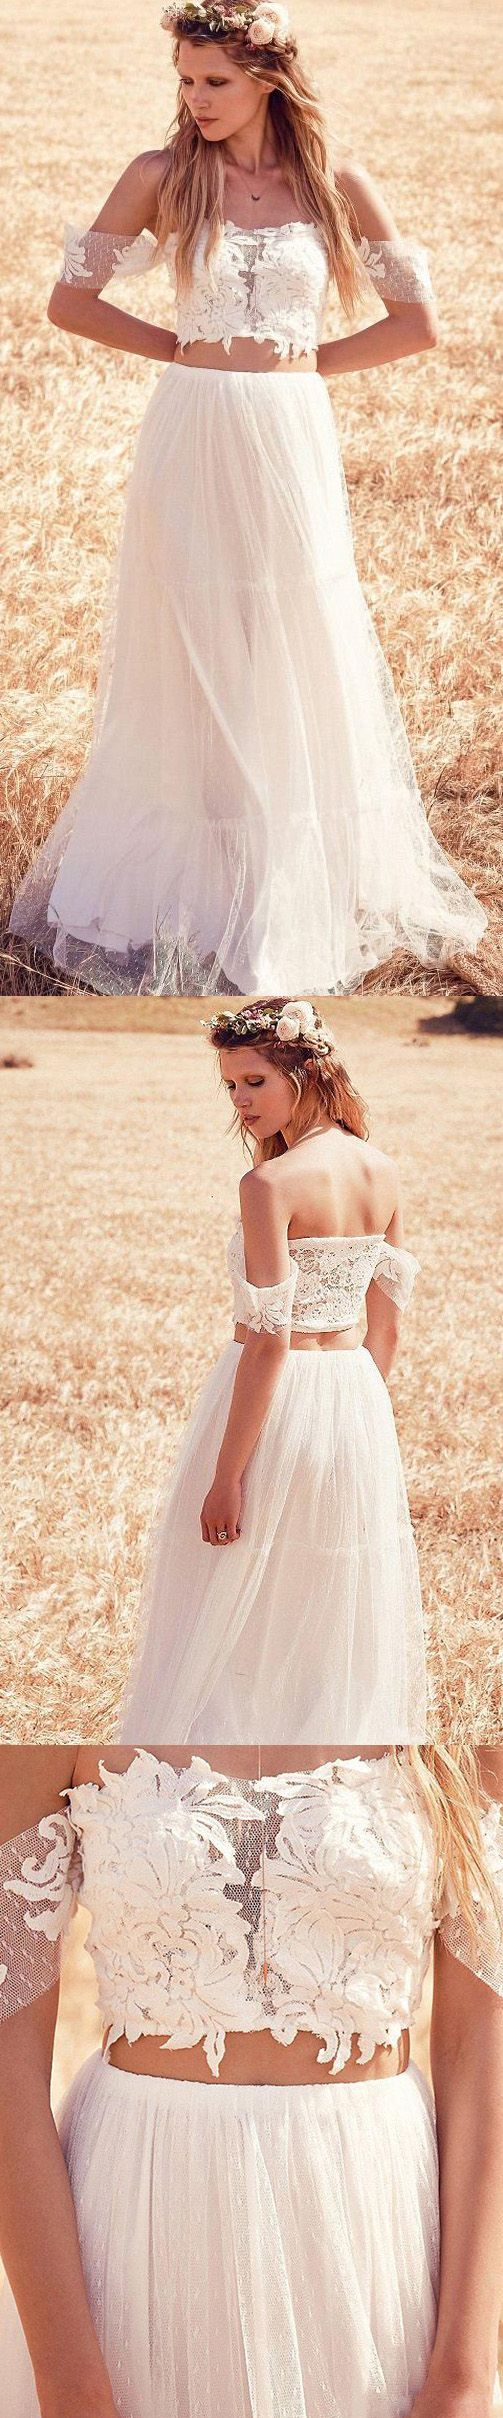 Cheap wedding dresses with sleeves   best Wedding Dresses images on Pinterest